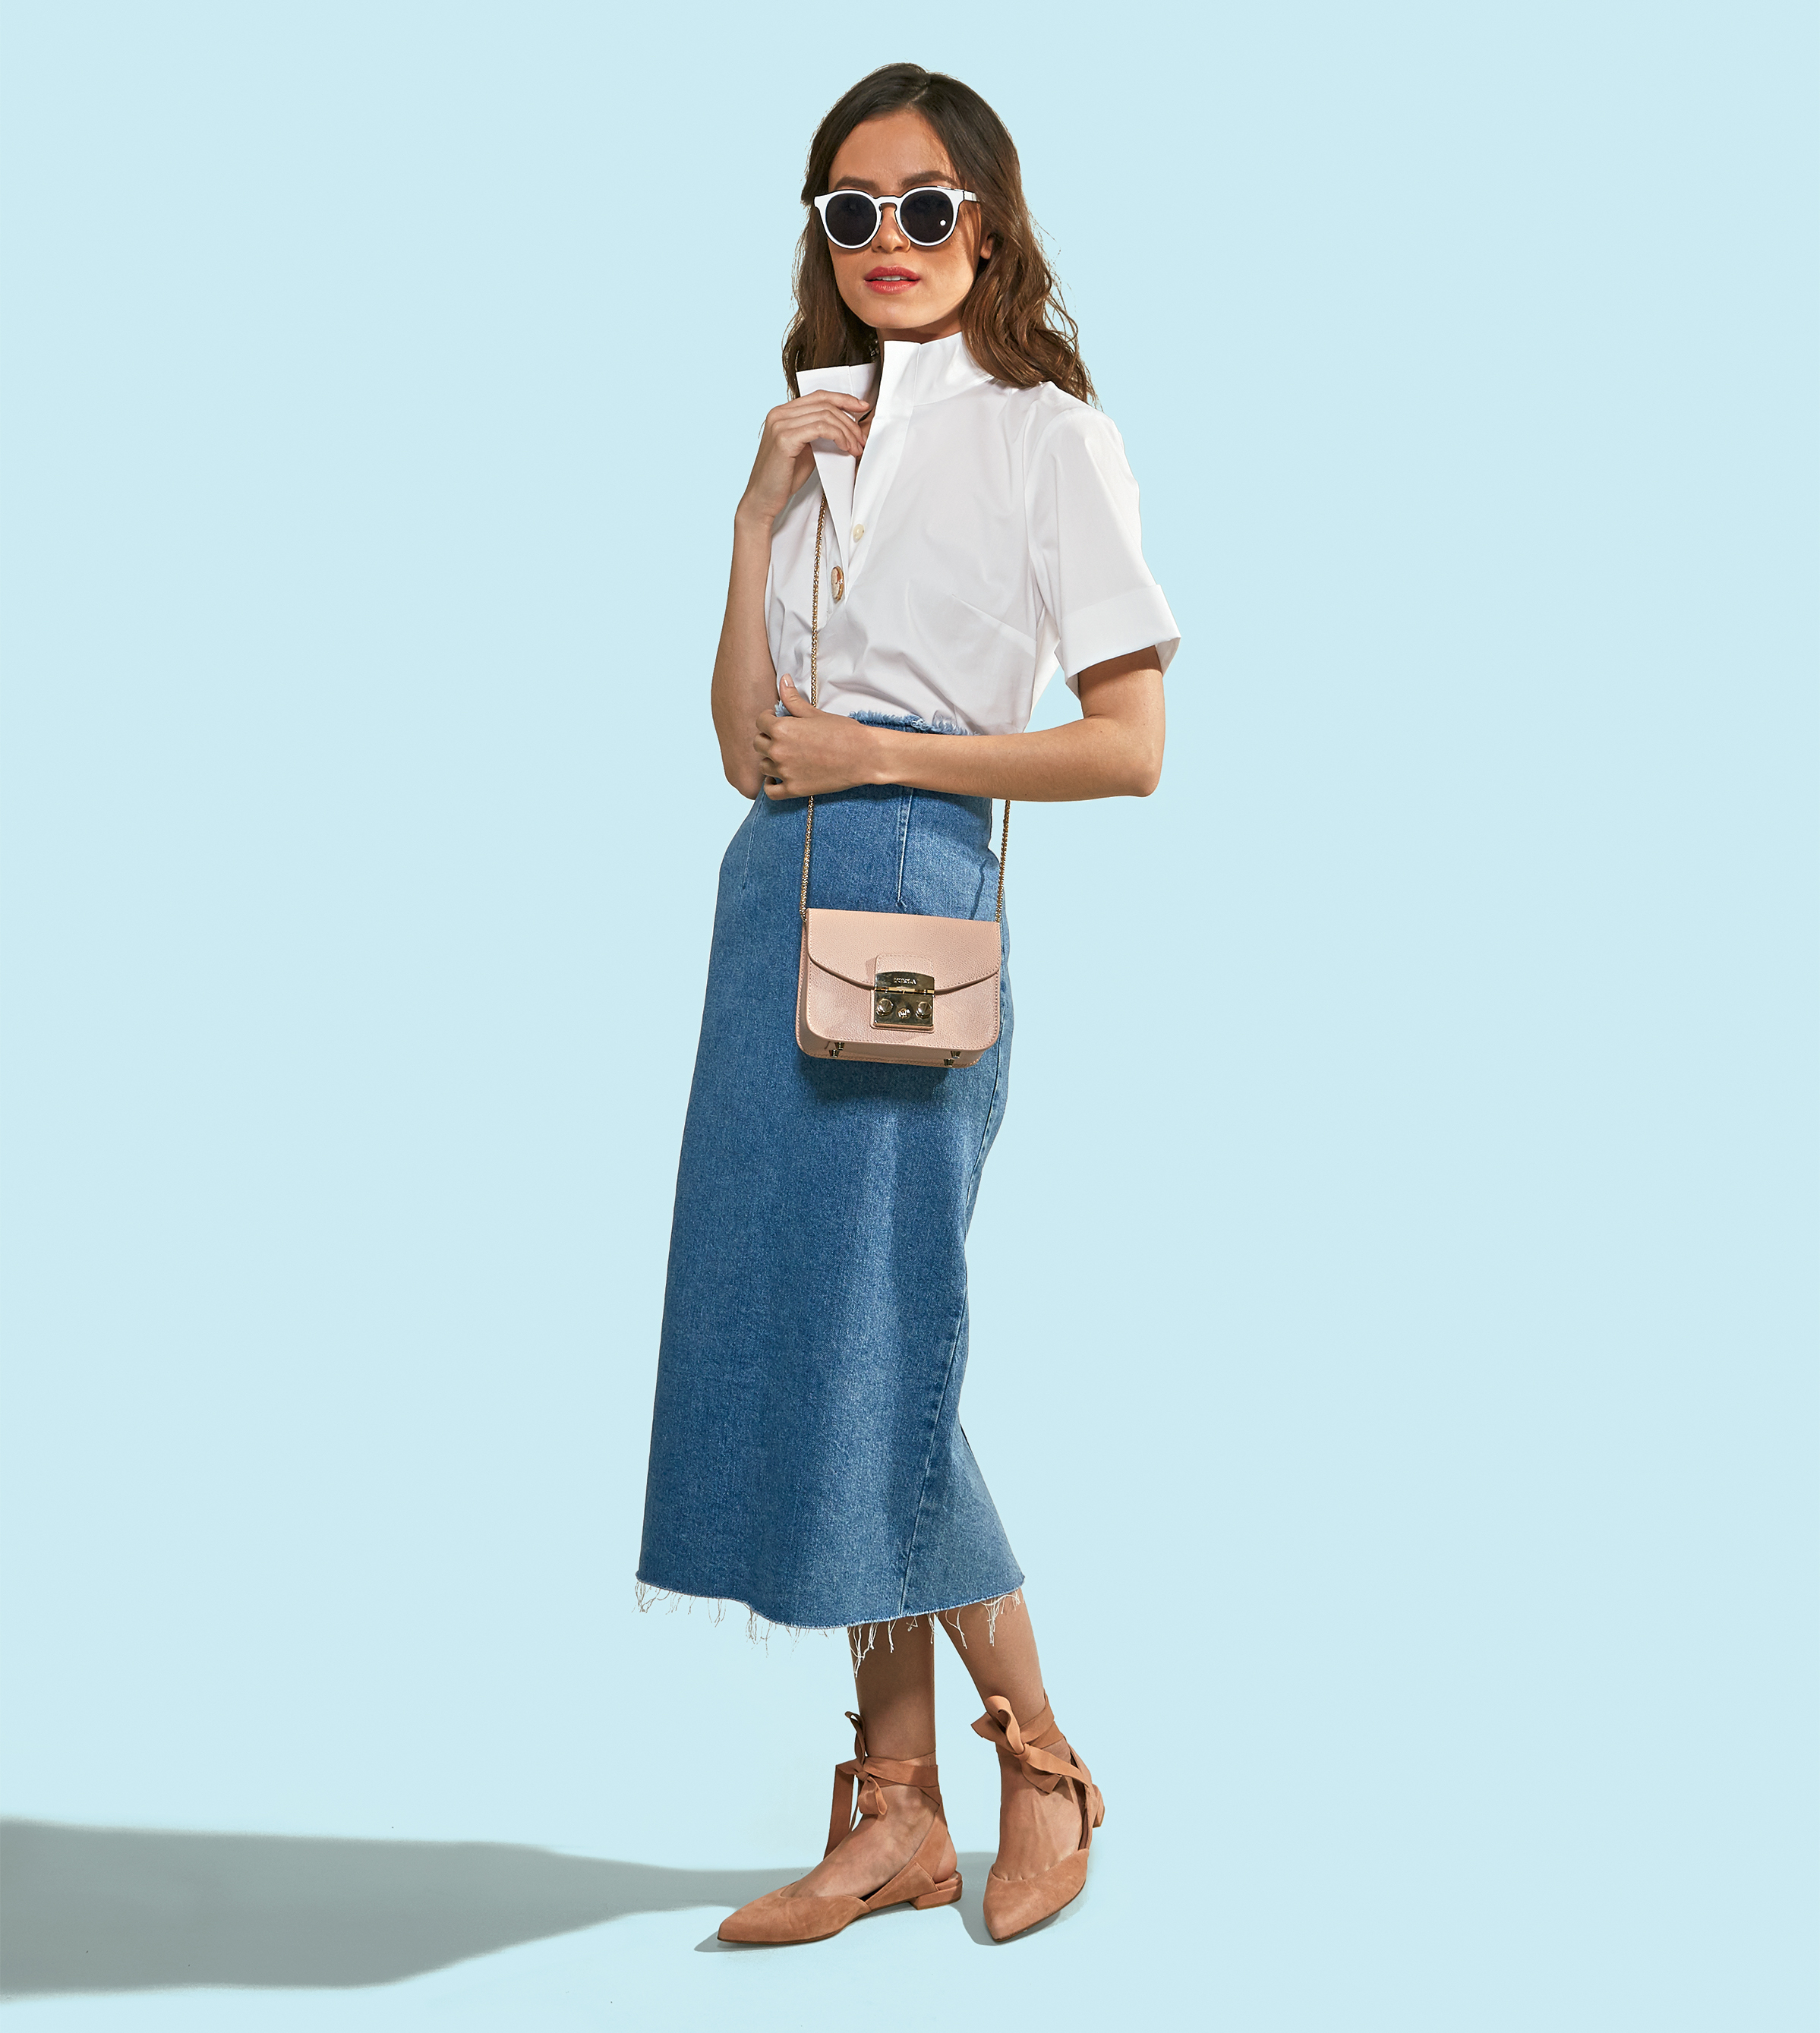 a0d0c6775366 A high-waisted pencil skirt offers the perfect amount of leg coverage for casual  Friday. Denim pencil skirt